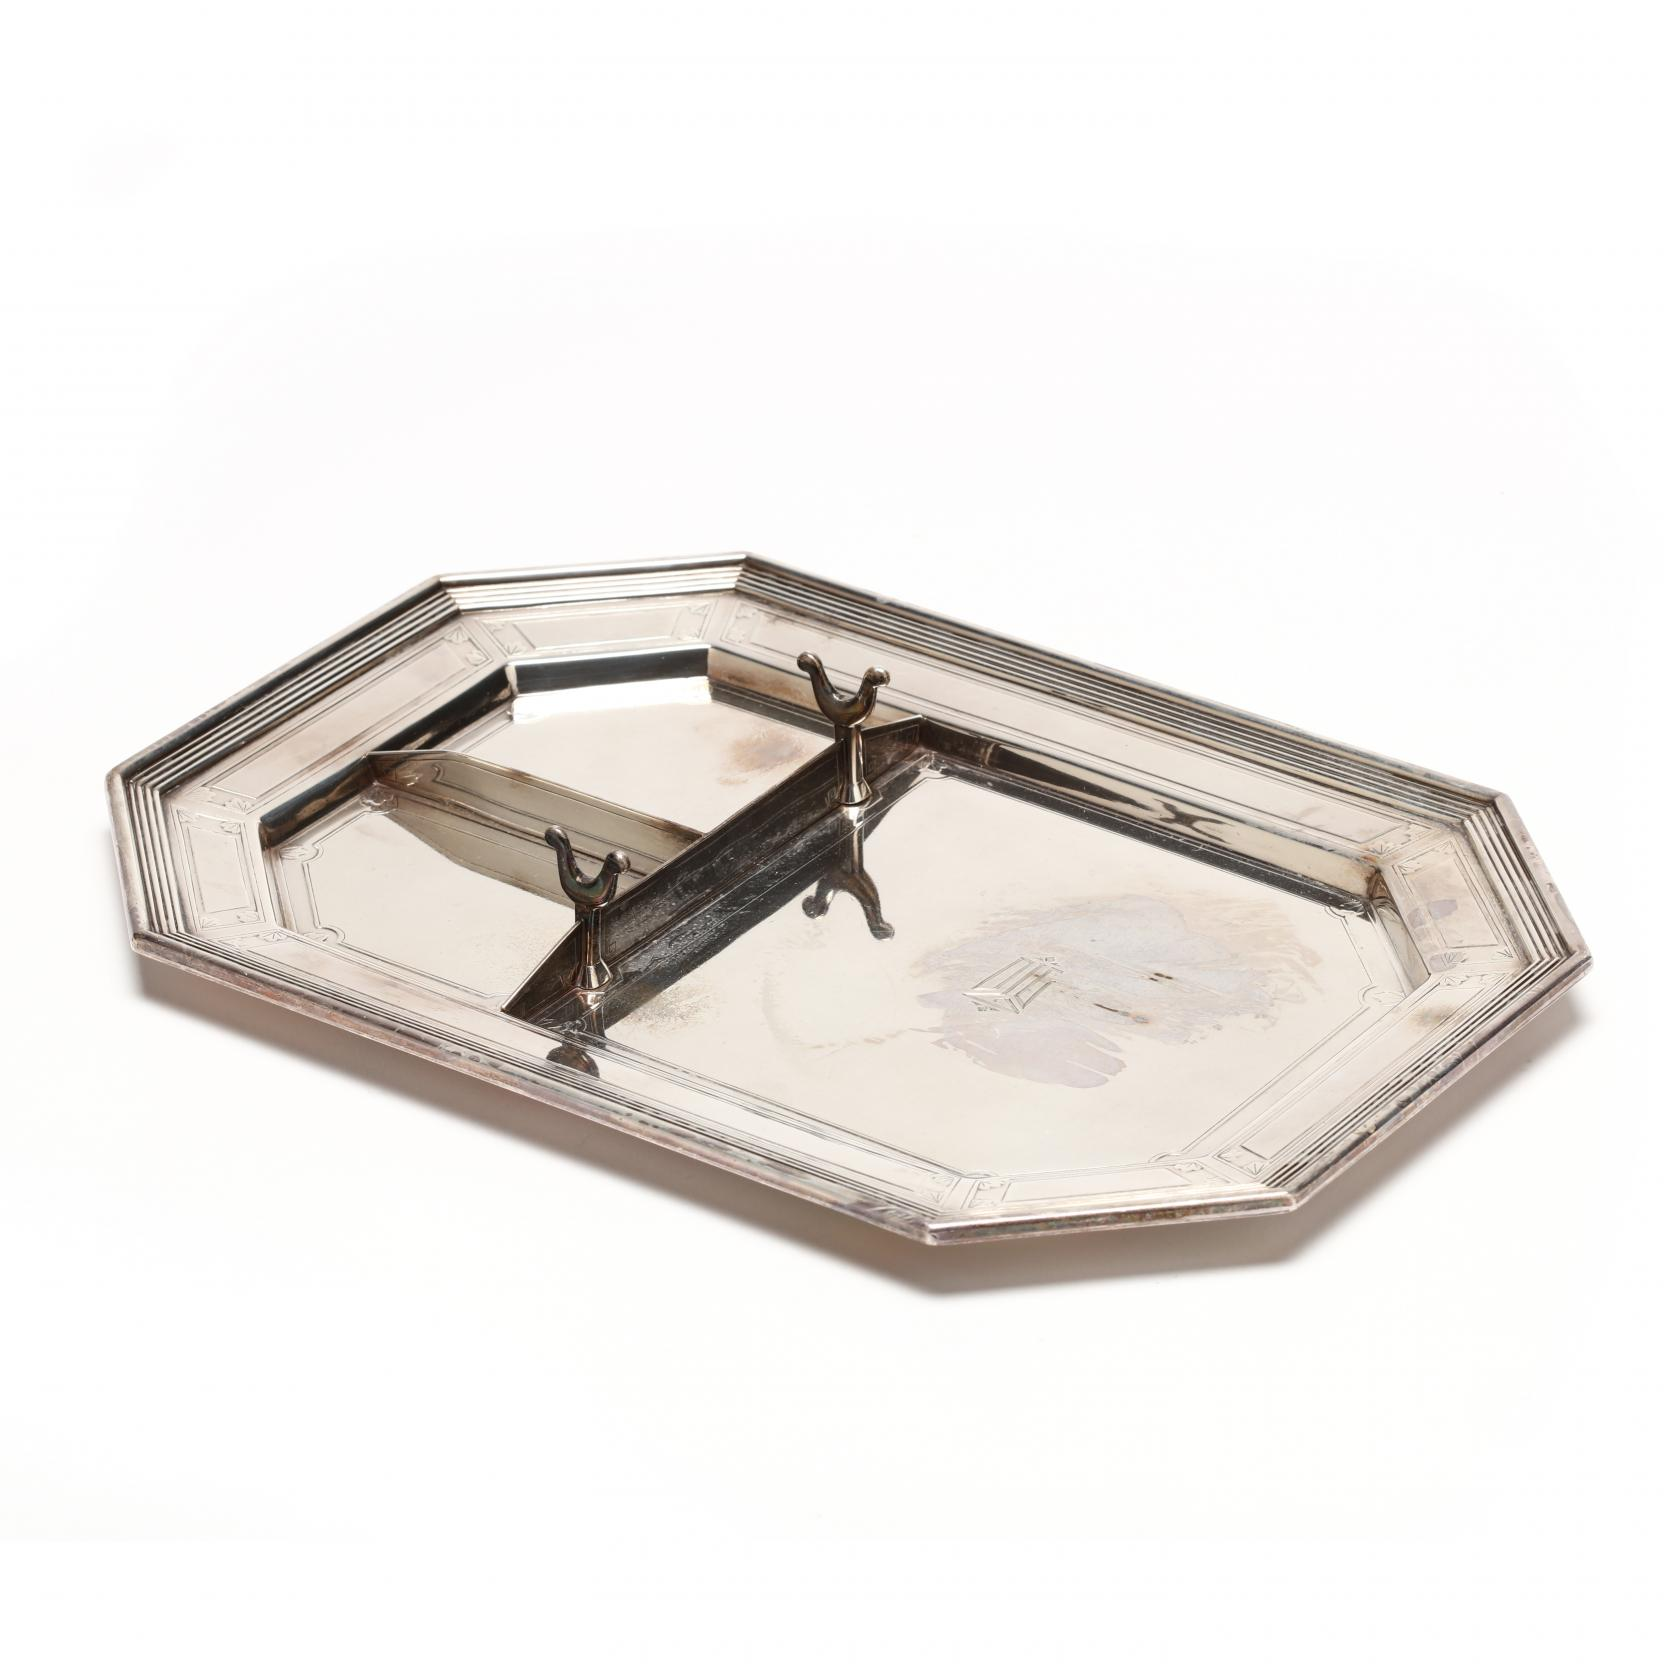 tiffany-co-sterling-silver-smoking-tray